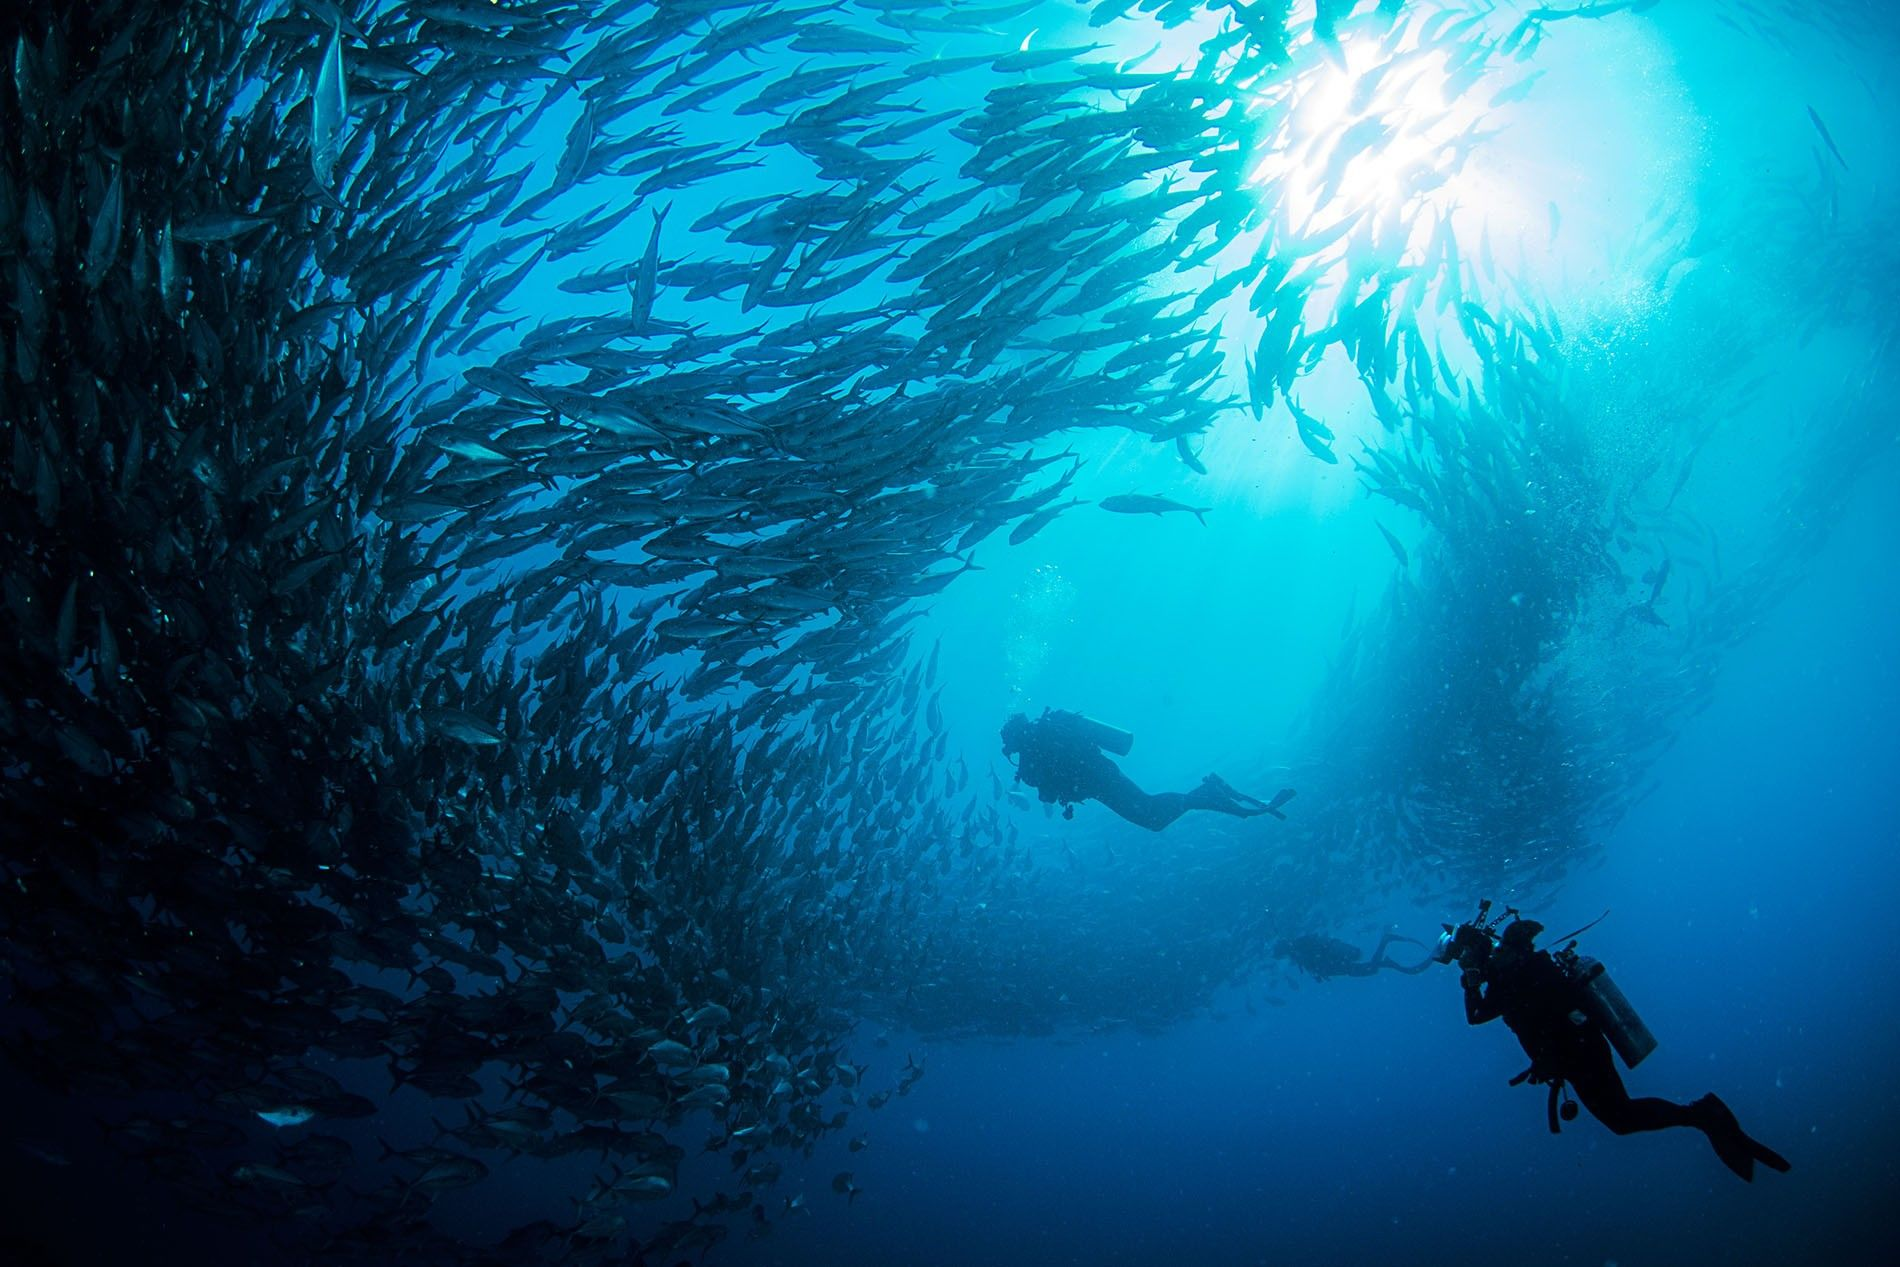 A diver swims beneath a shoal of fish